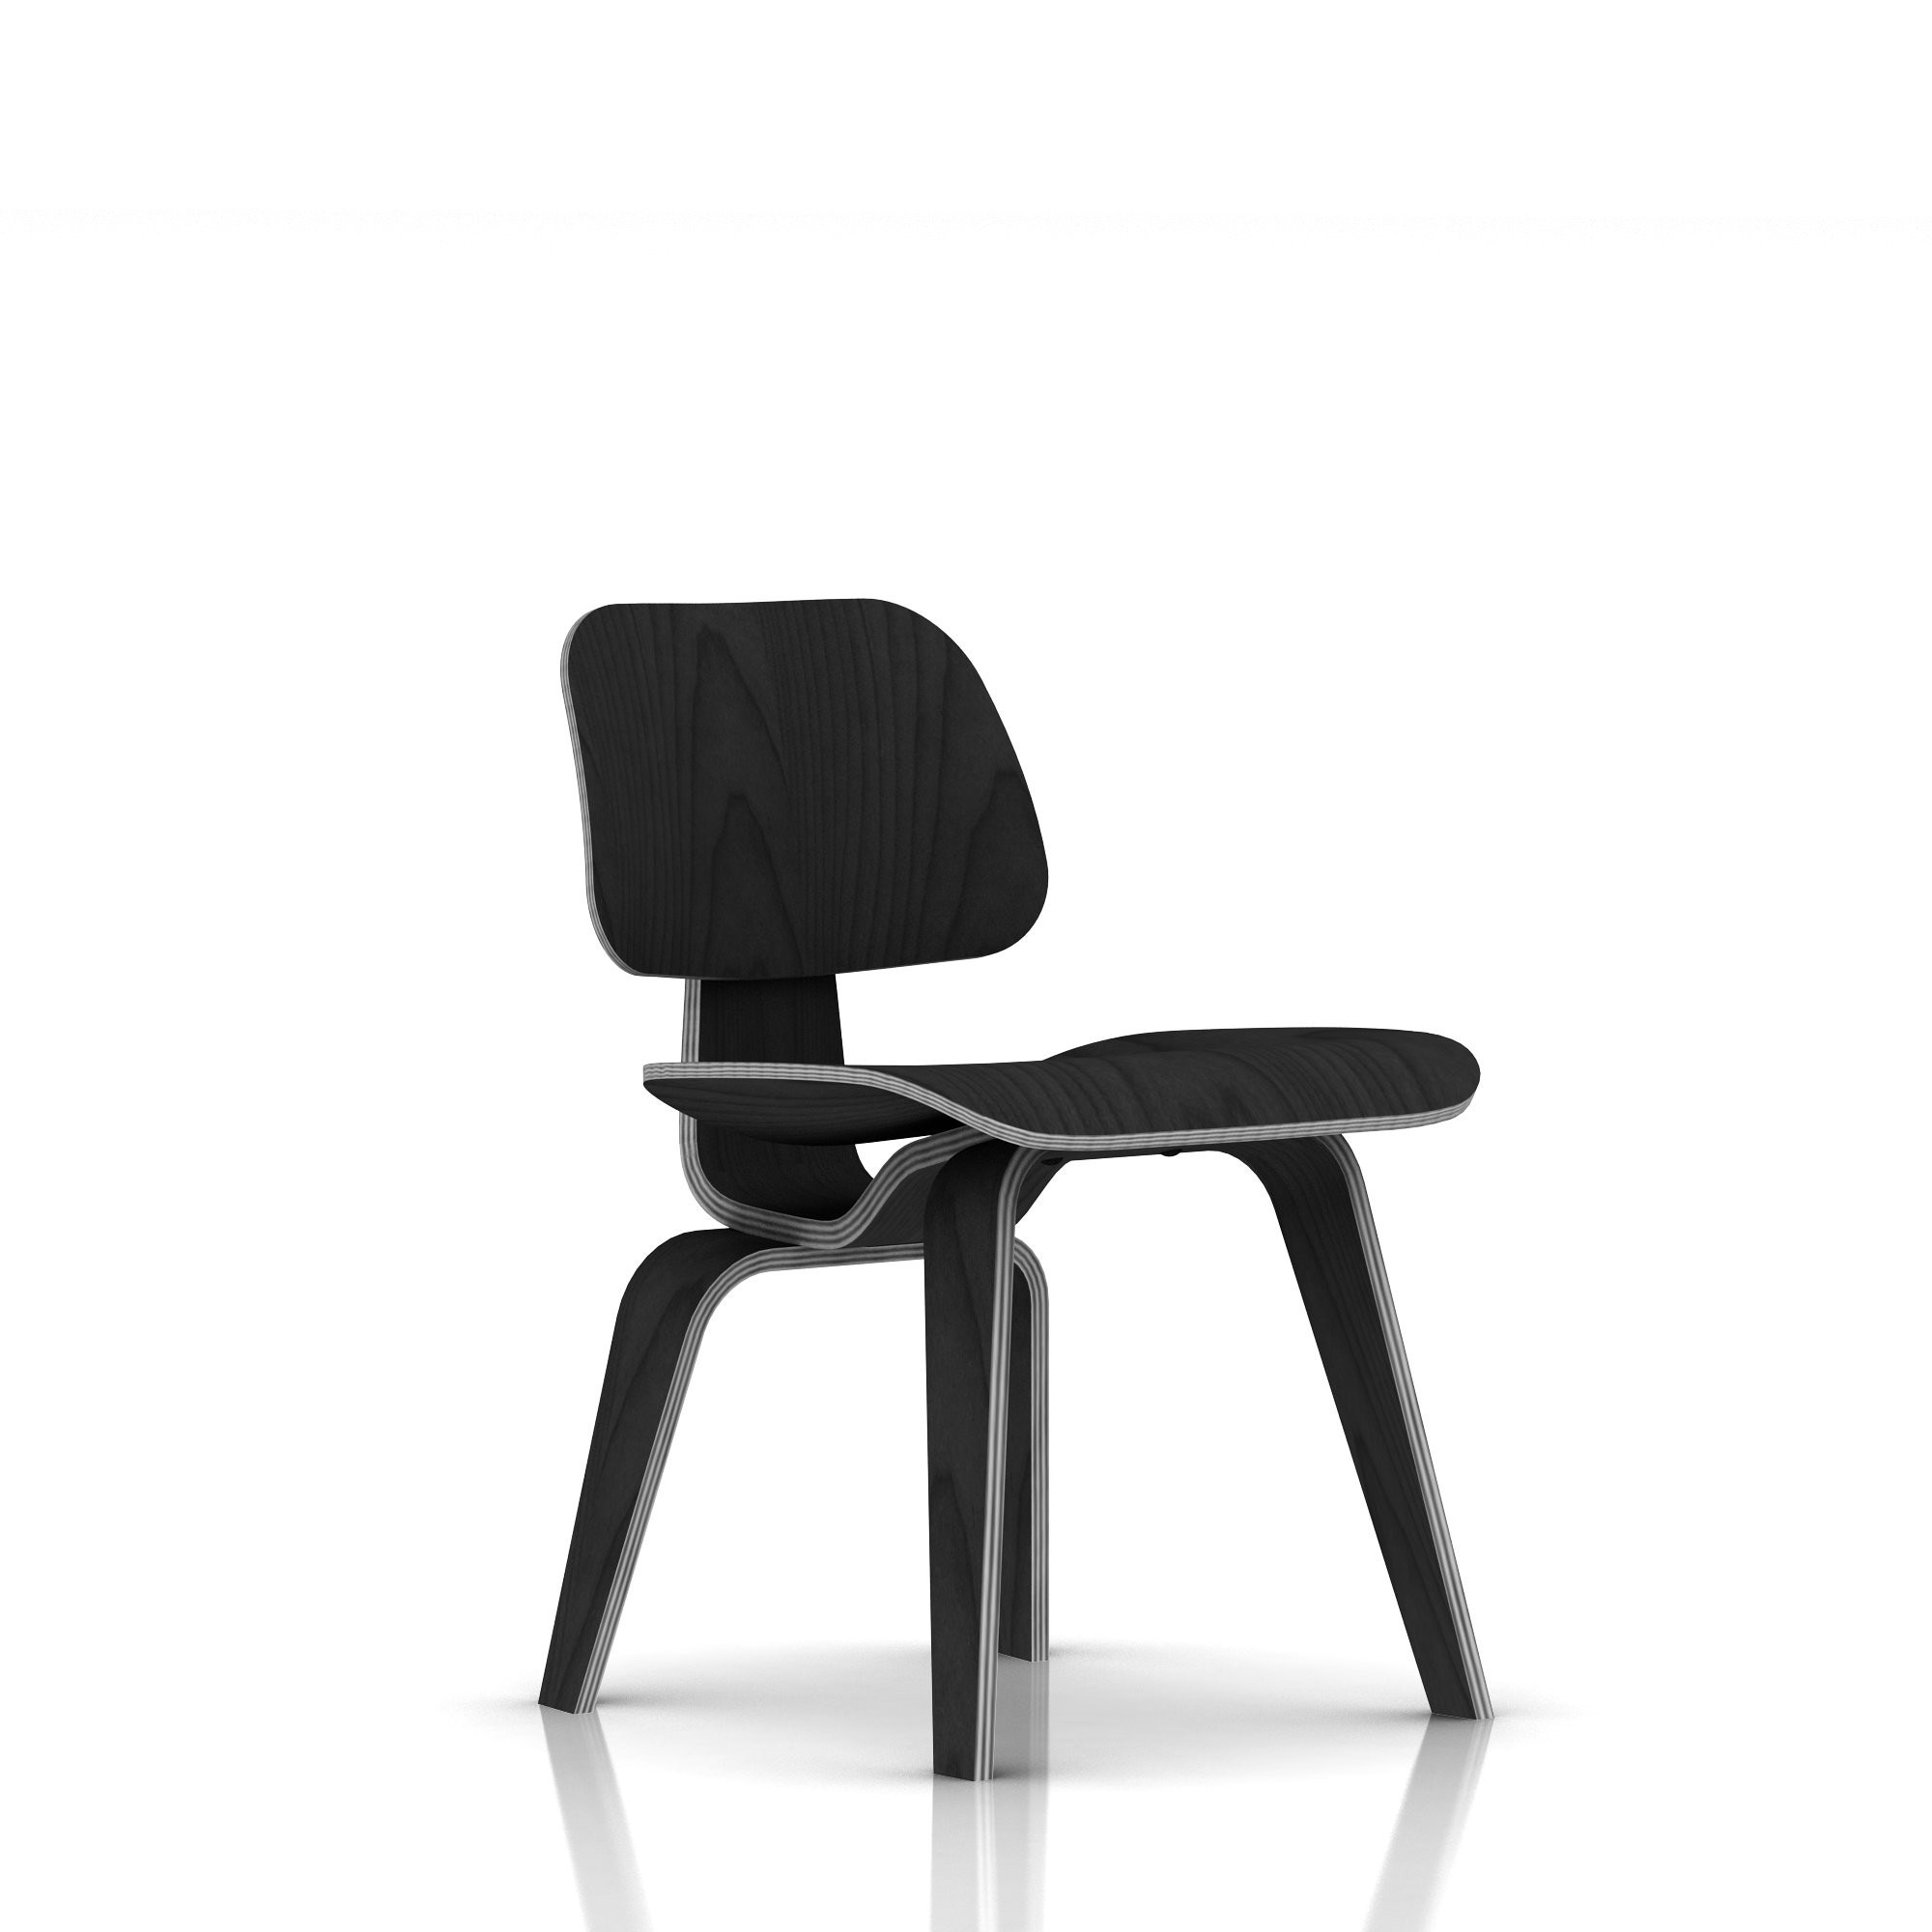 Herman Miller Eames174 Molded Plywood Dining Chair Wood  : eamesmoldedplywooddiningchairwithwoodbasestainedashfront from grshop.com size 2000 x 2000 jpeg 121kB